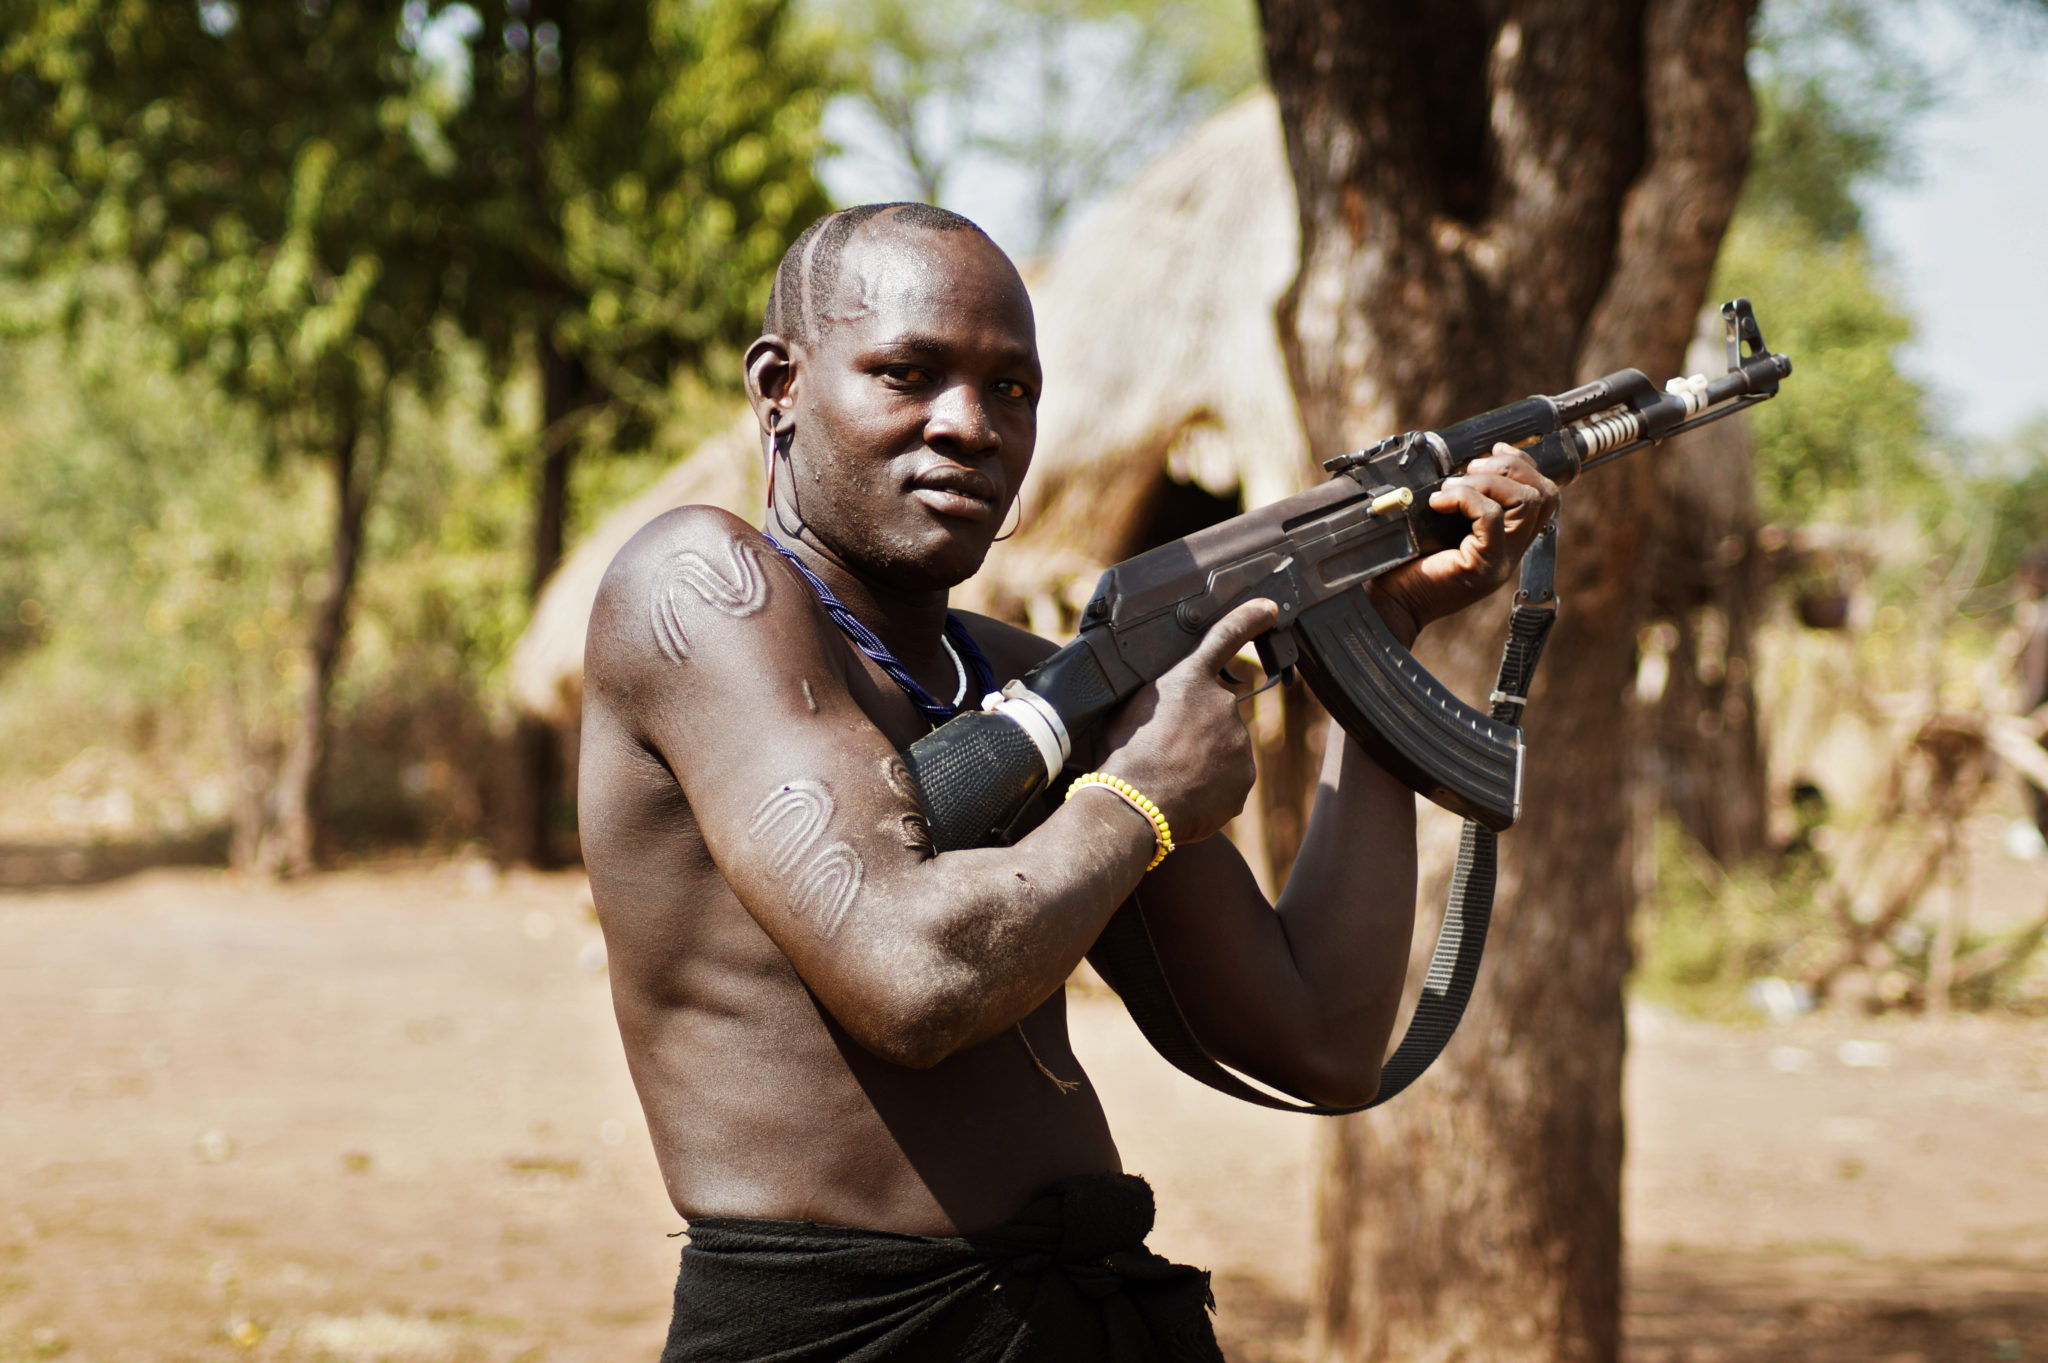 Mursi-people-Ethiopia-warrior-kalashnikov